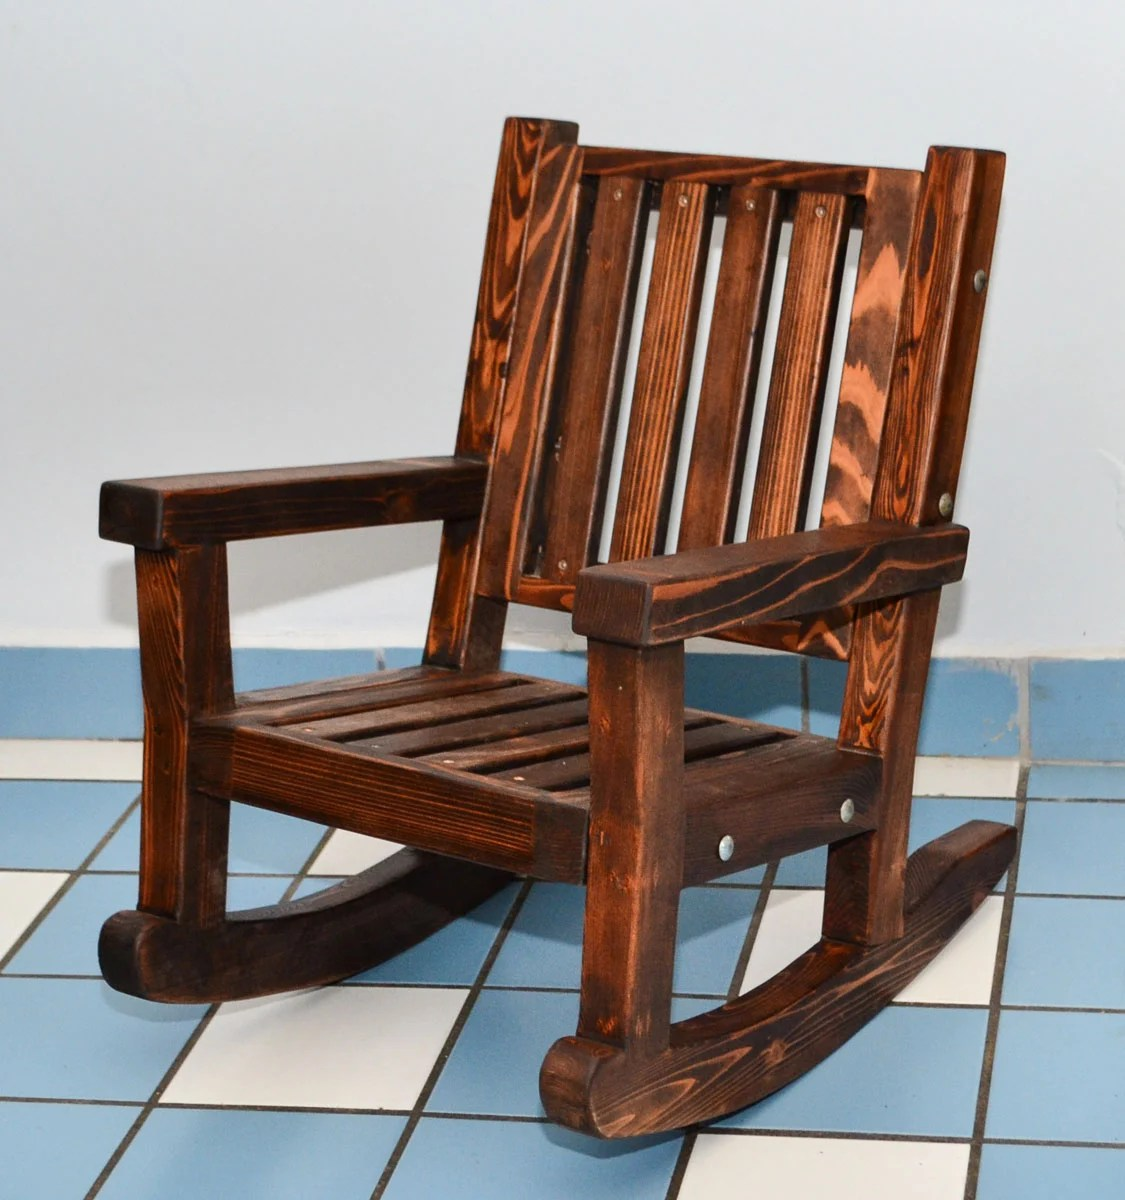 Rocky Chair Kids Wooden Rocking Chair Sturdy Redwood Kids Chair